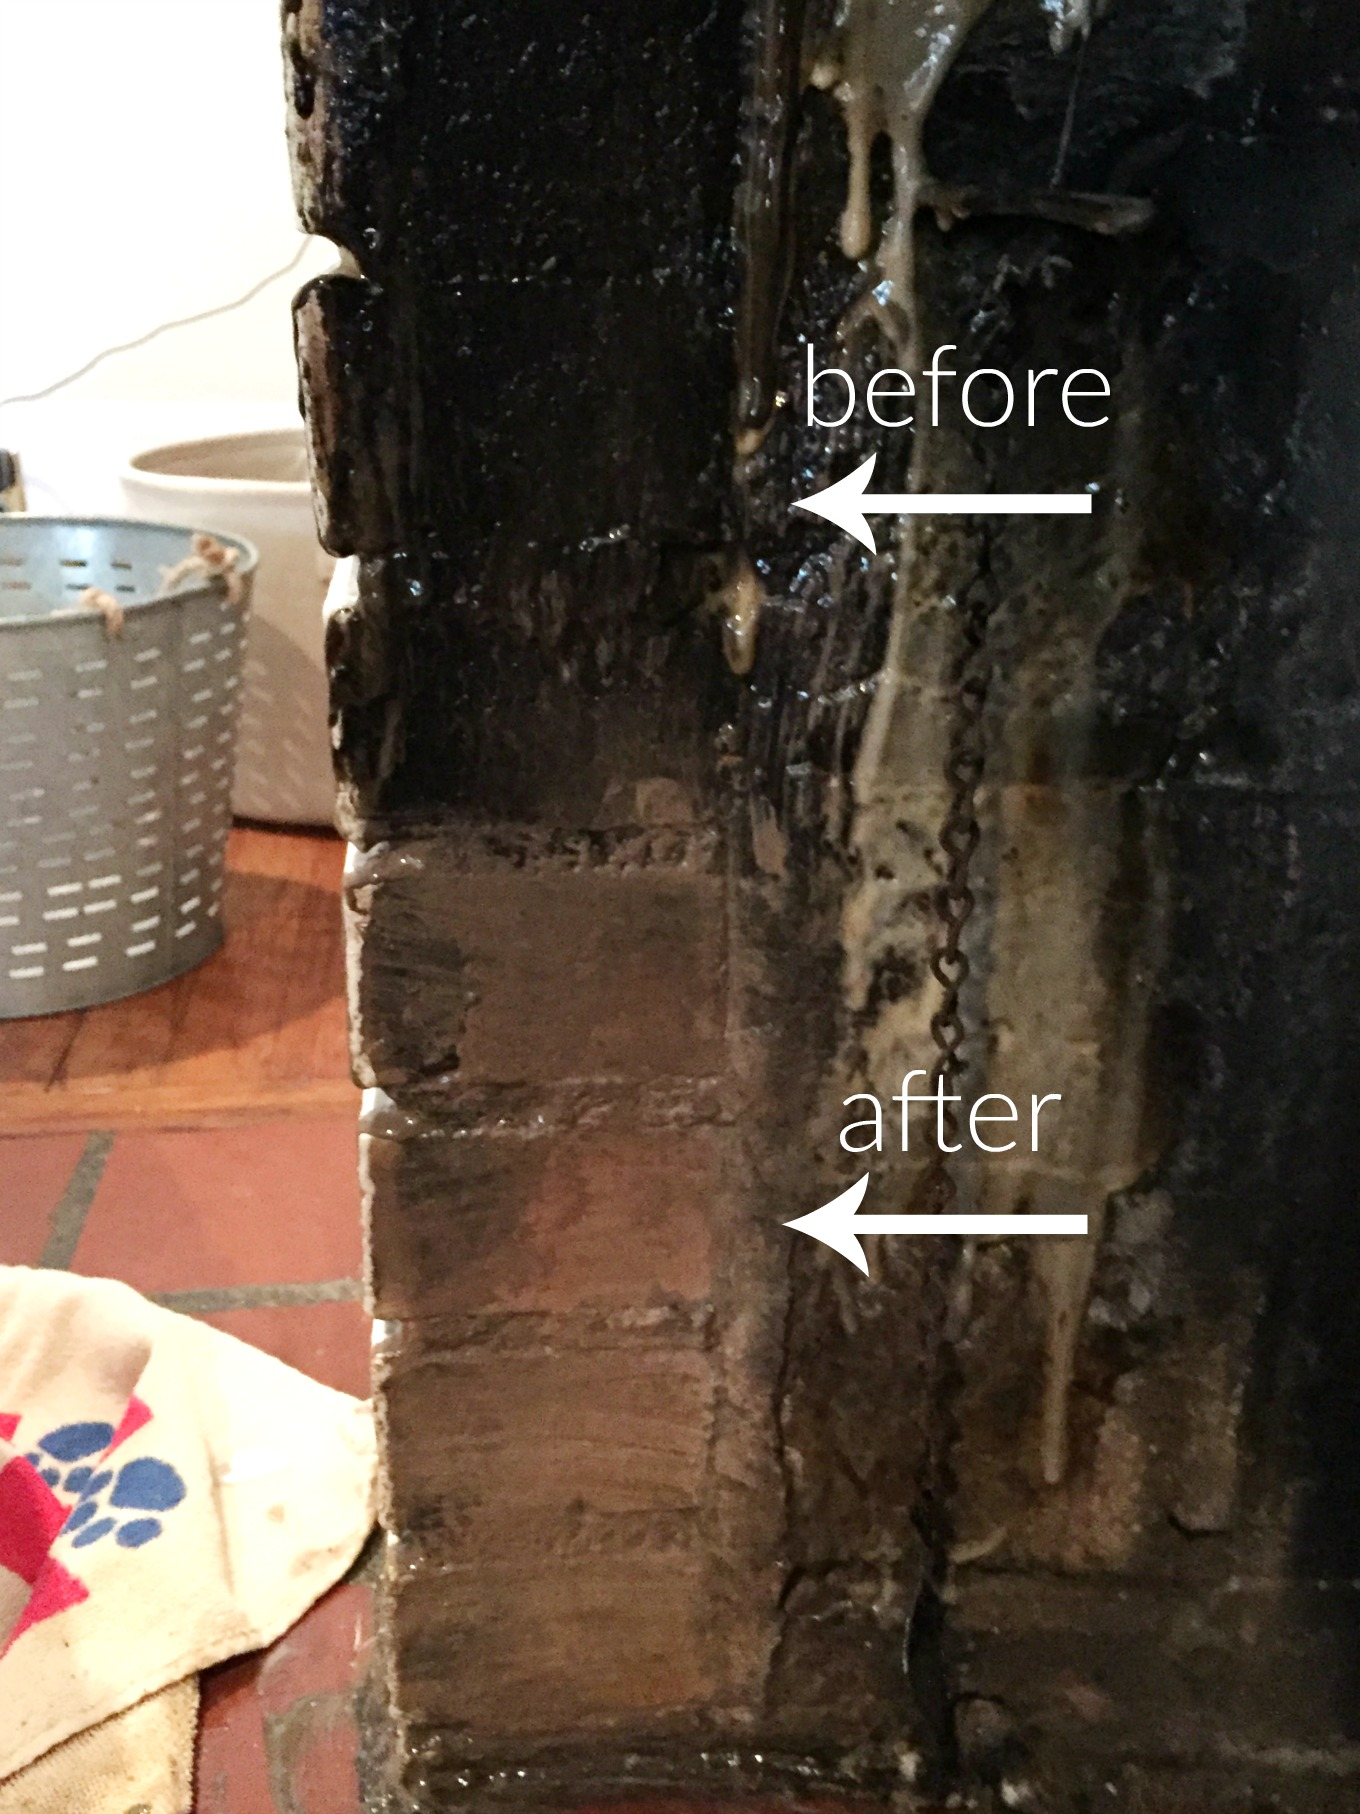 Before and after how to clean a fireplace firebox brick - thediybungalow.com